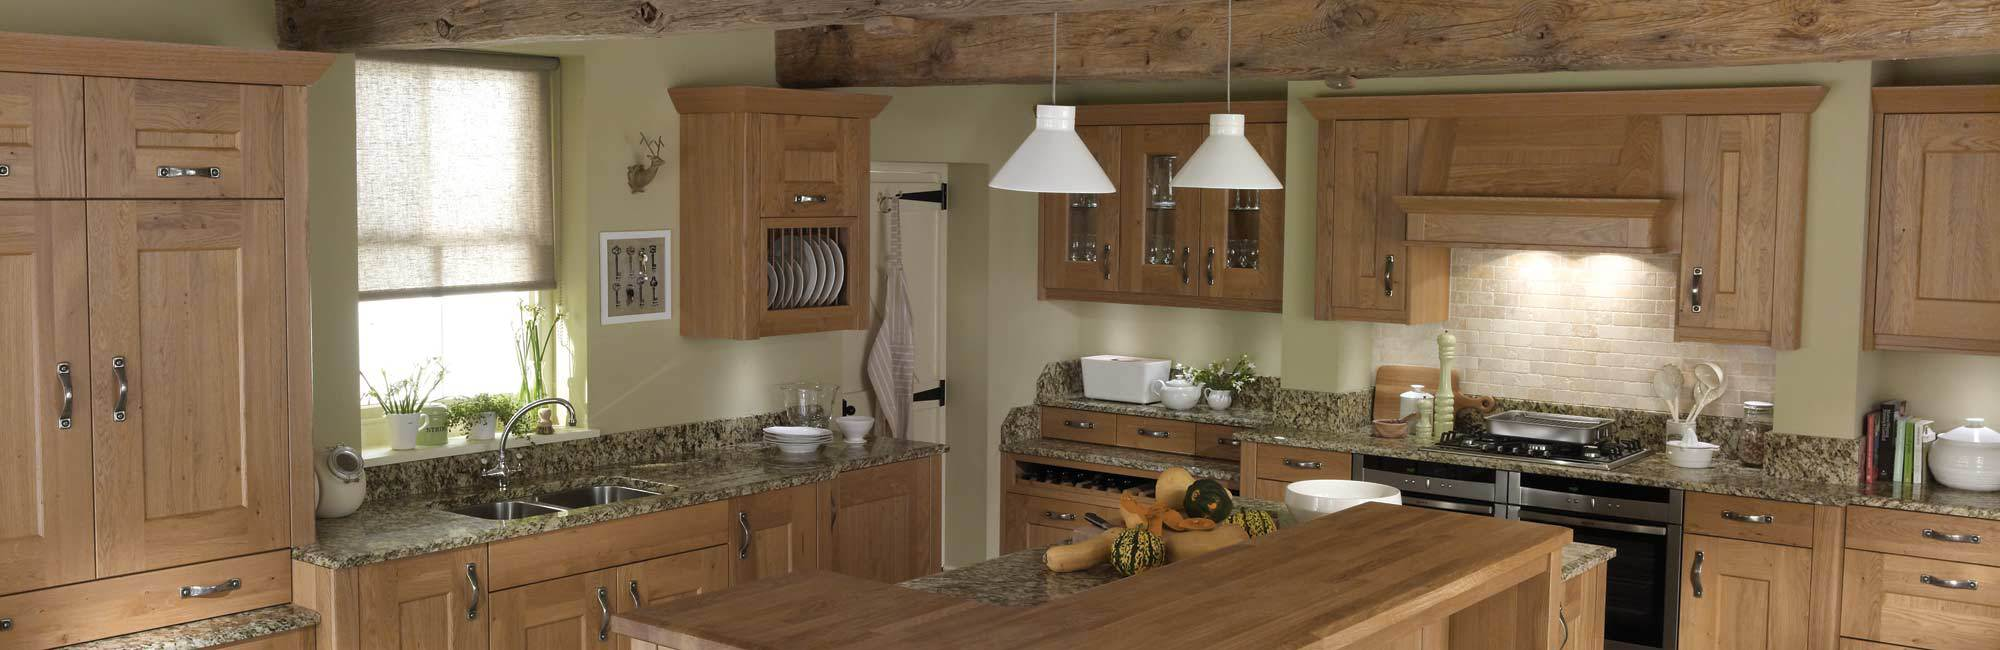 Traditional oak featured kitchen